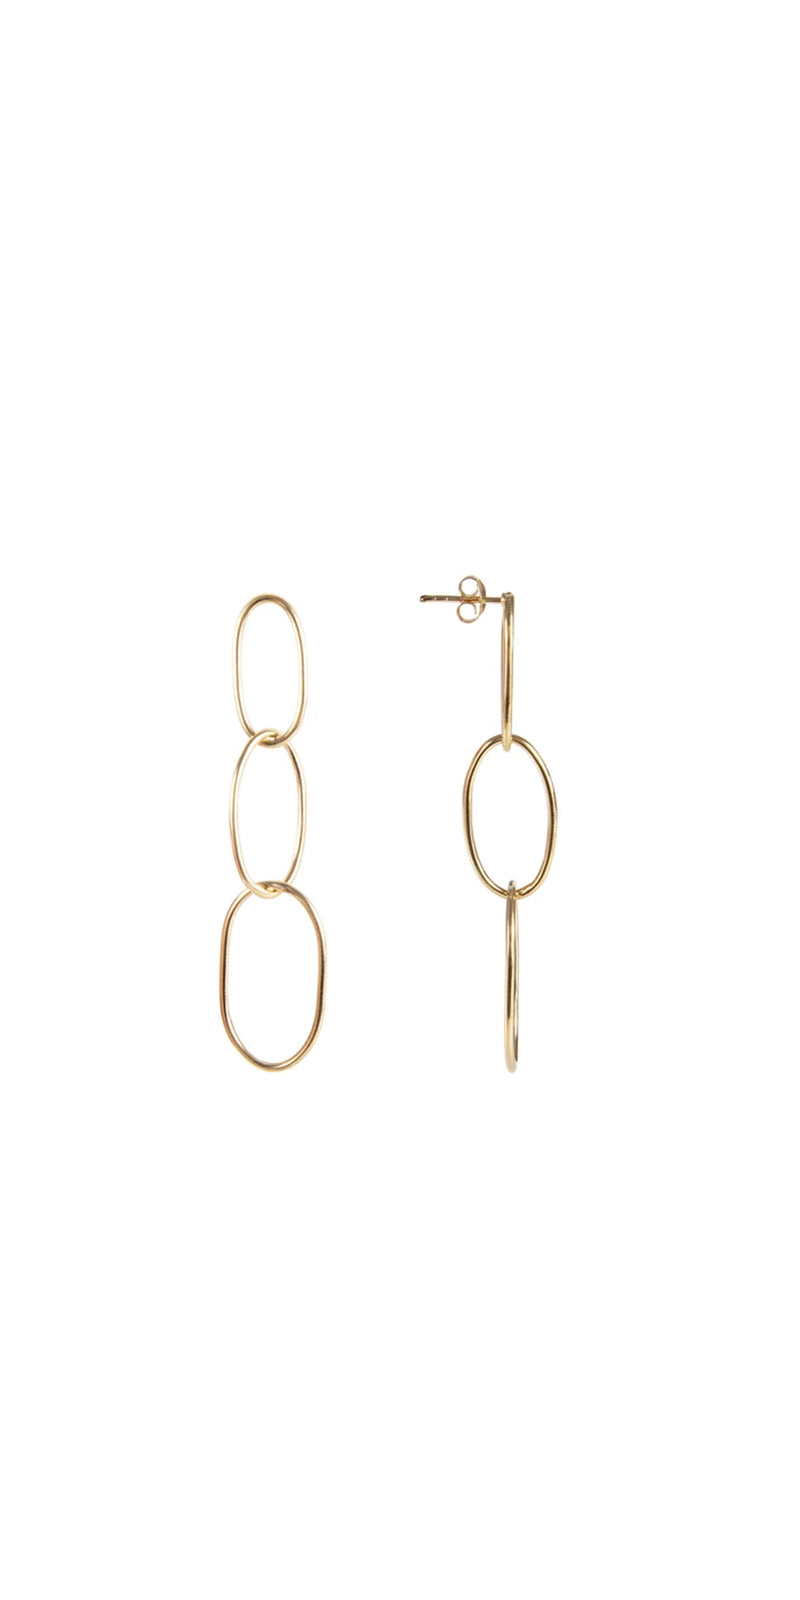 FAIRLEY MARILYN LINK EARRINGS